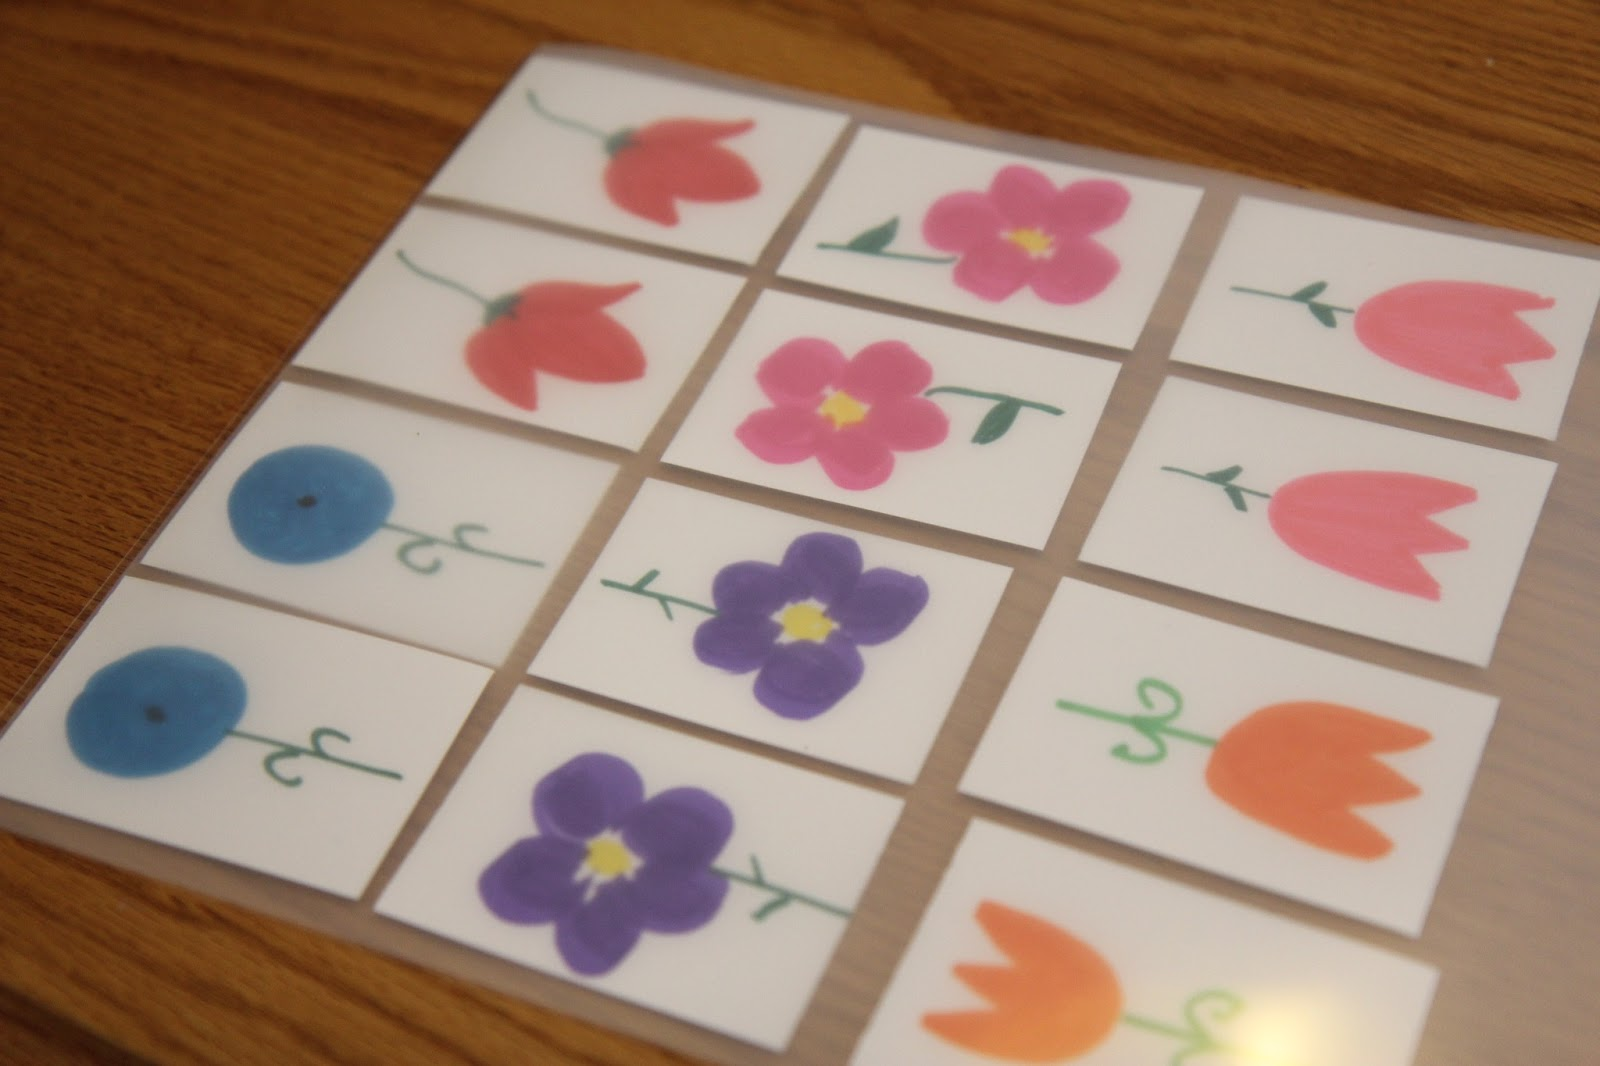 1378d0f28d0de I cut up some paper using cardstock, drew several matching flowers on them  with markers, laminated them (you could also use contact paper), cut them  out, ...